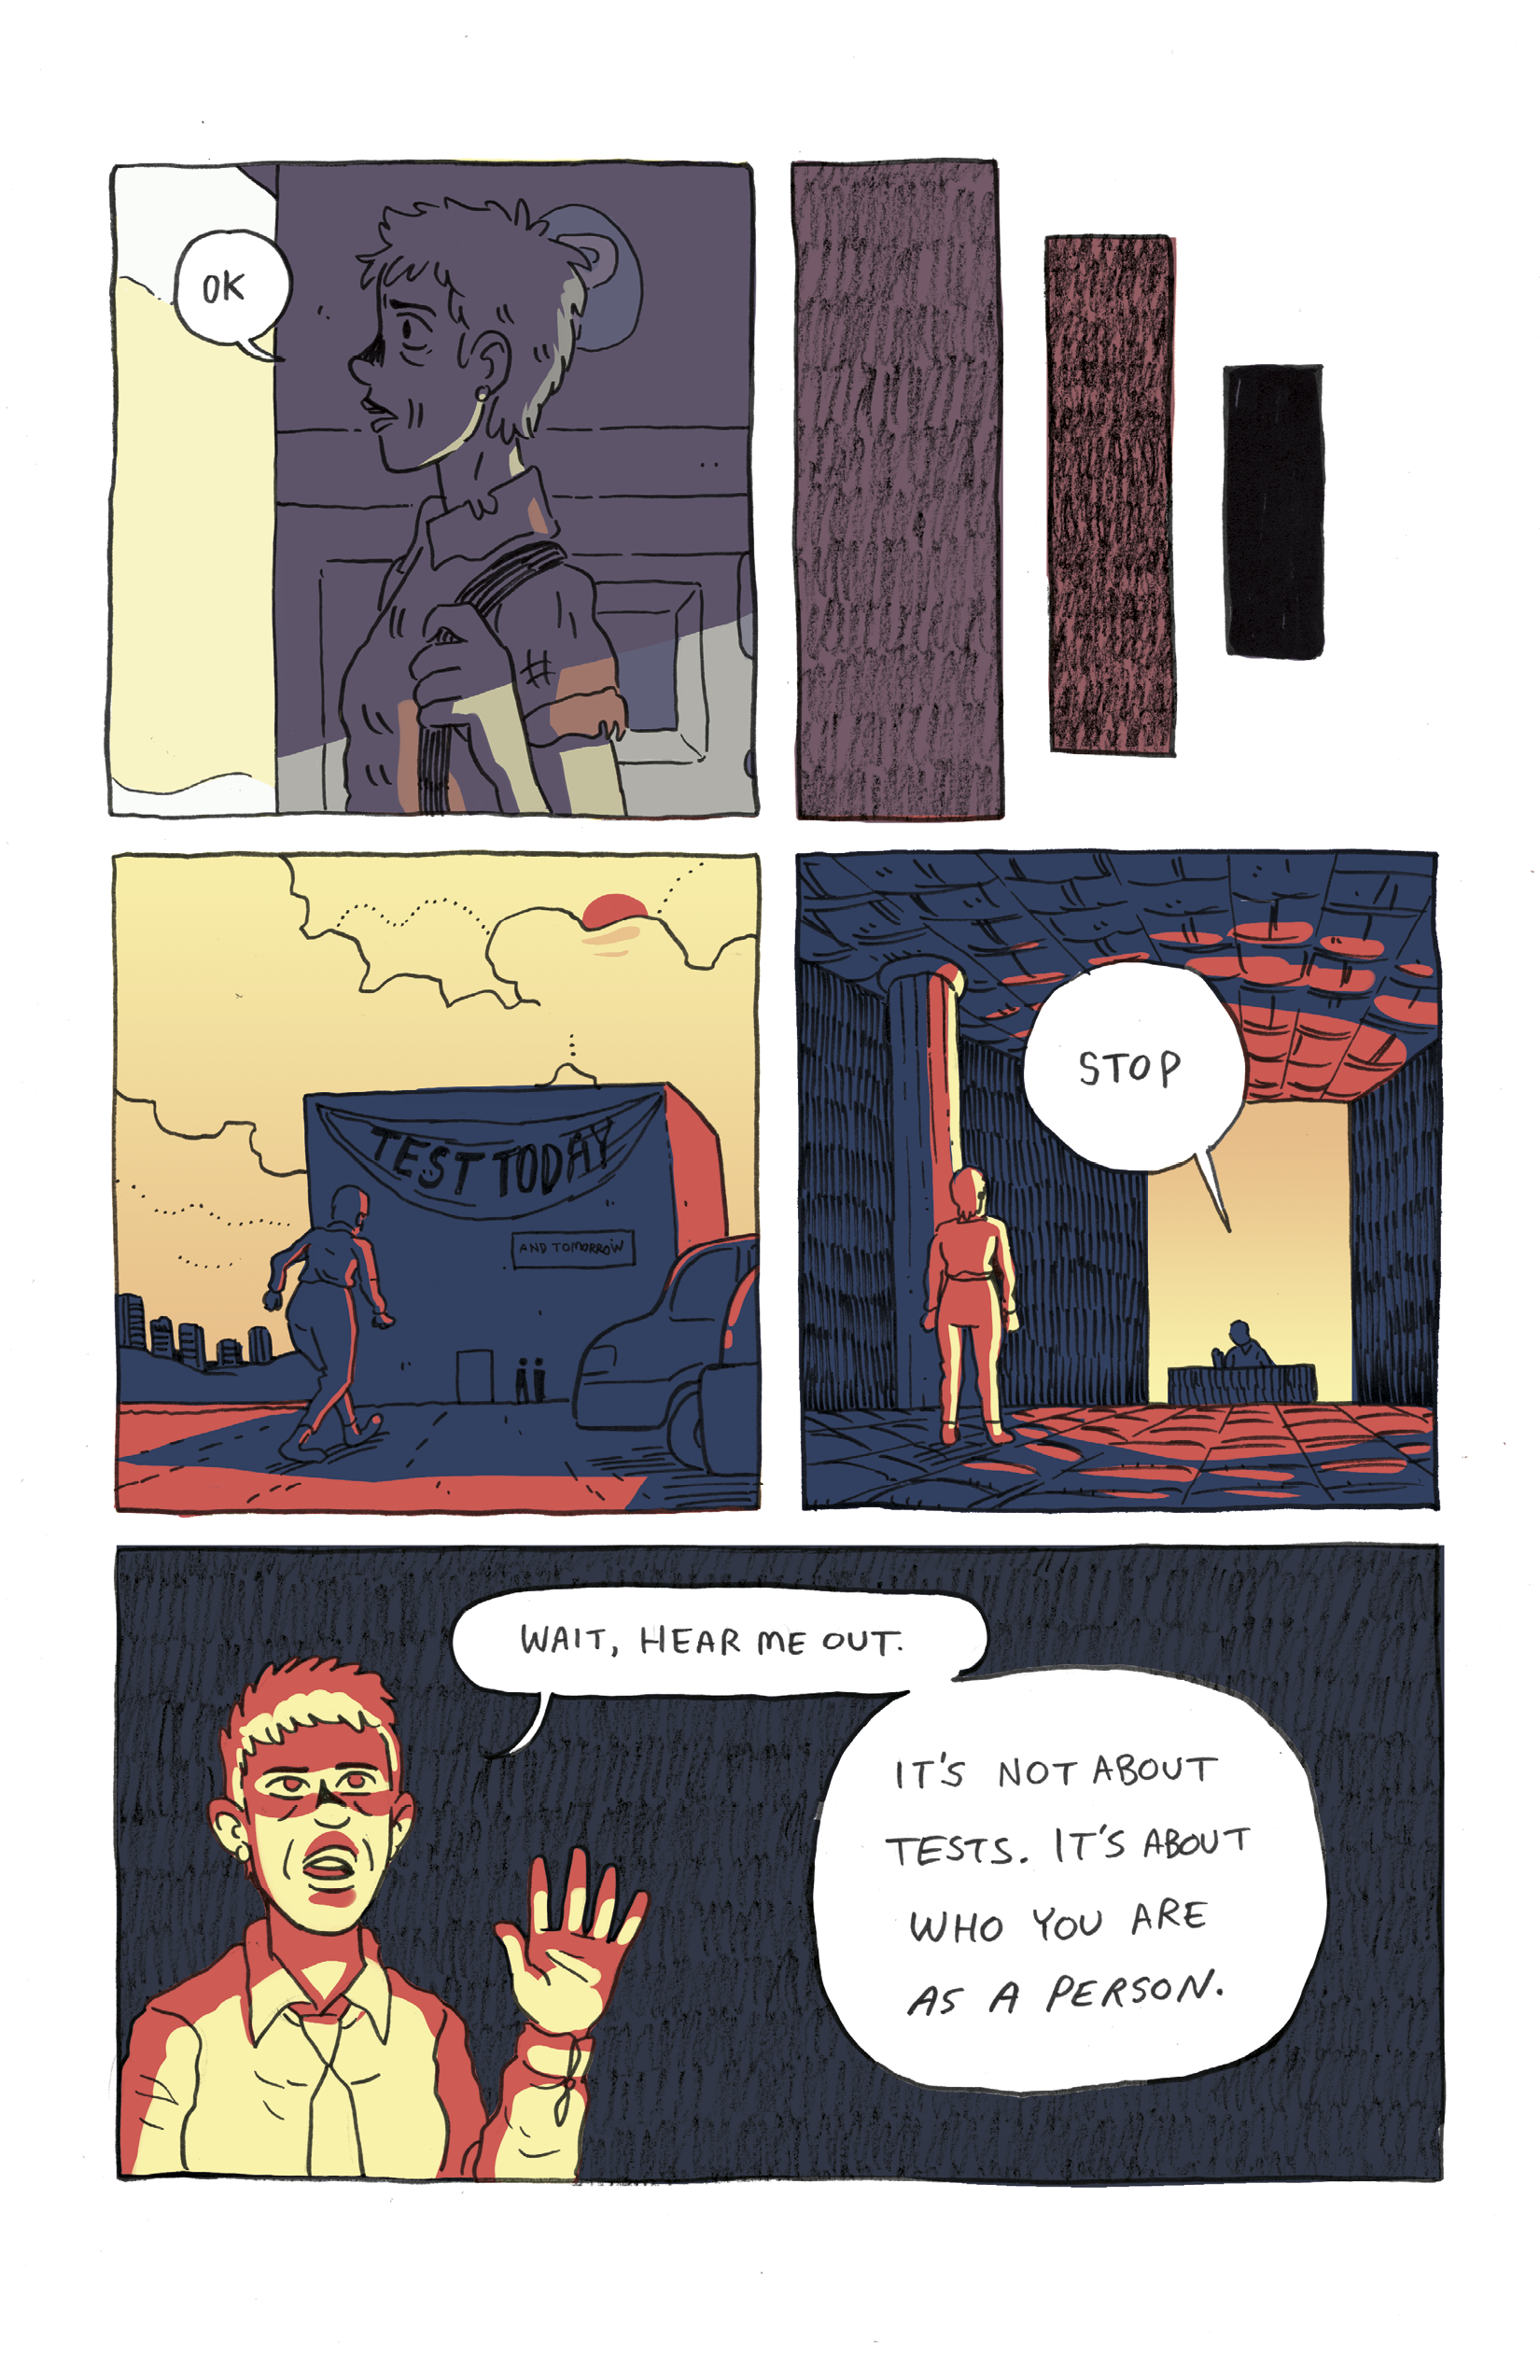 METANOIA_final_001_single_pages6.png